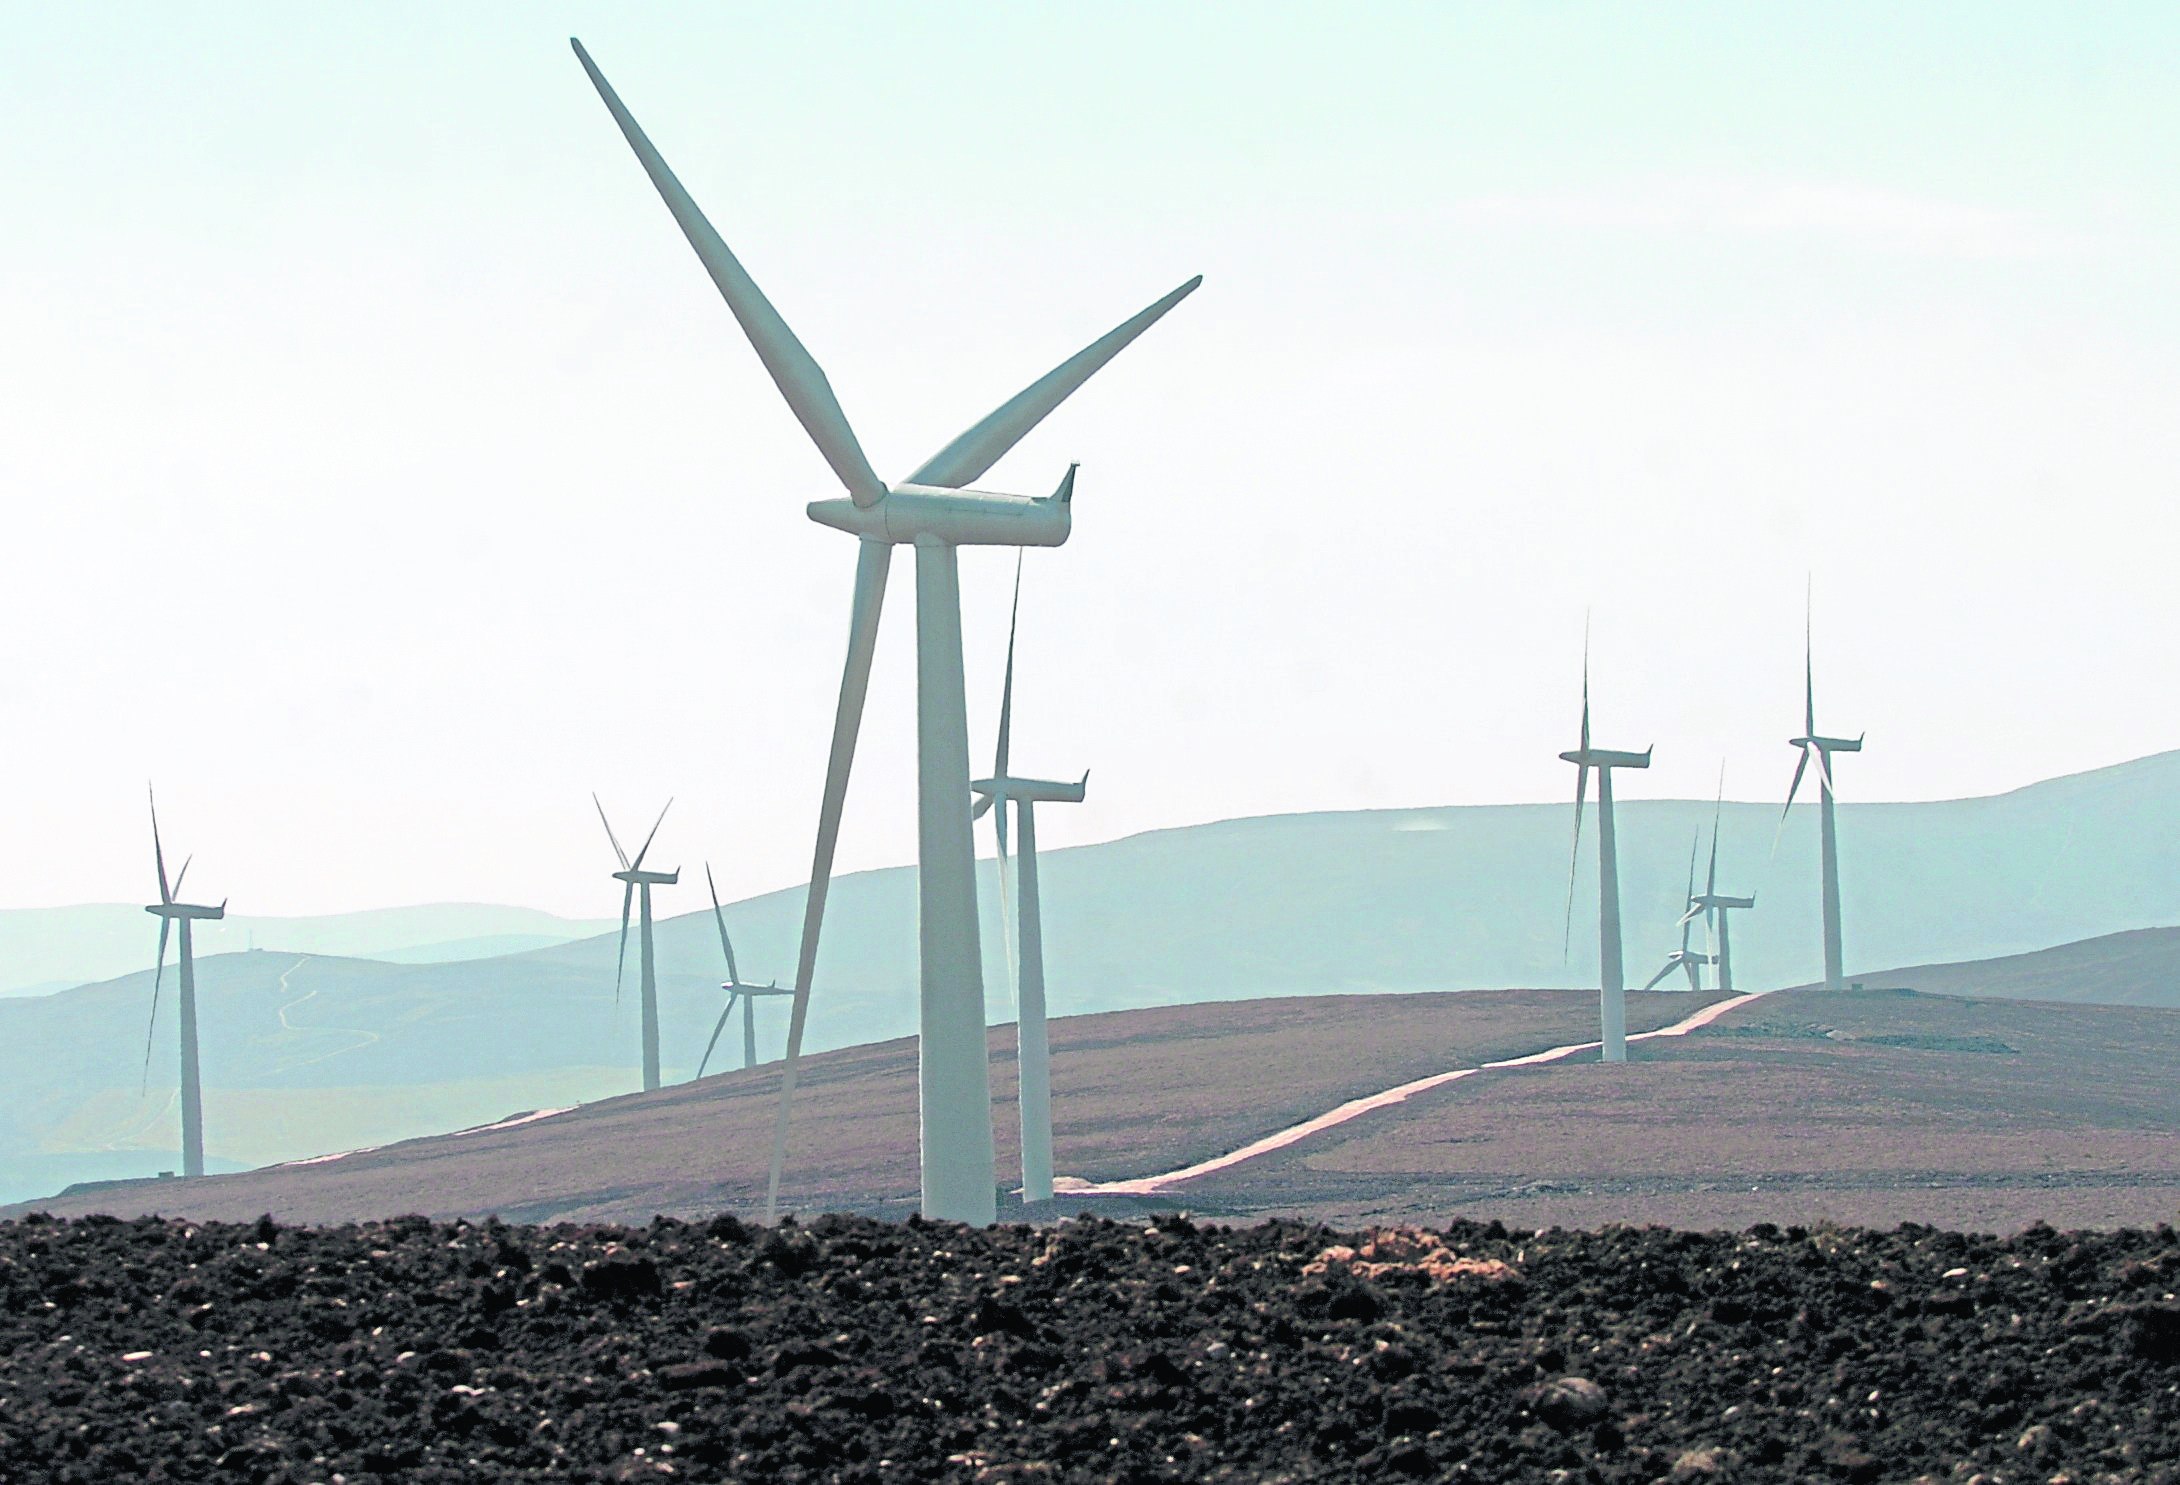 The Paul's Hill wind farm at Ballindalloch opened in 2006 and has 28 turbines, with plans for seven more